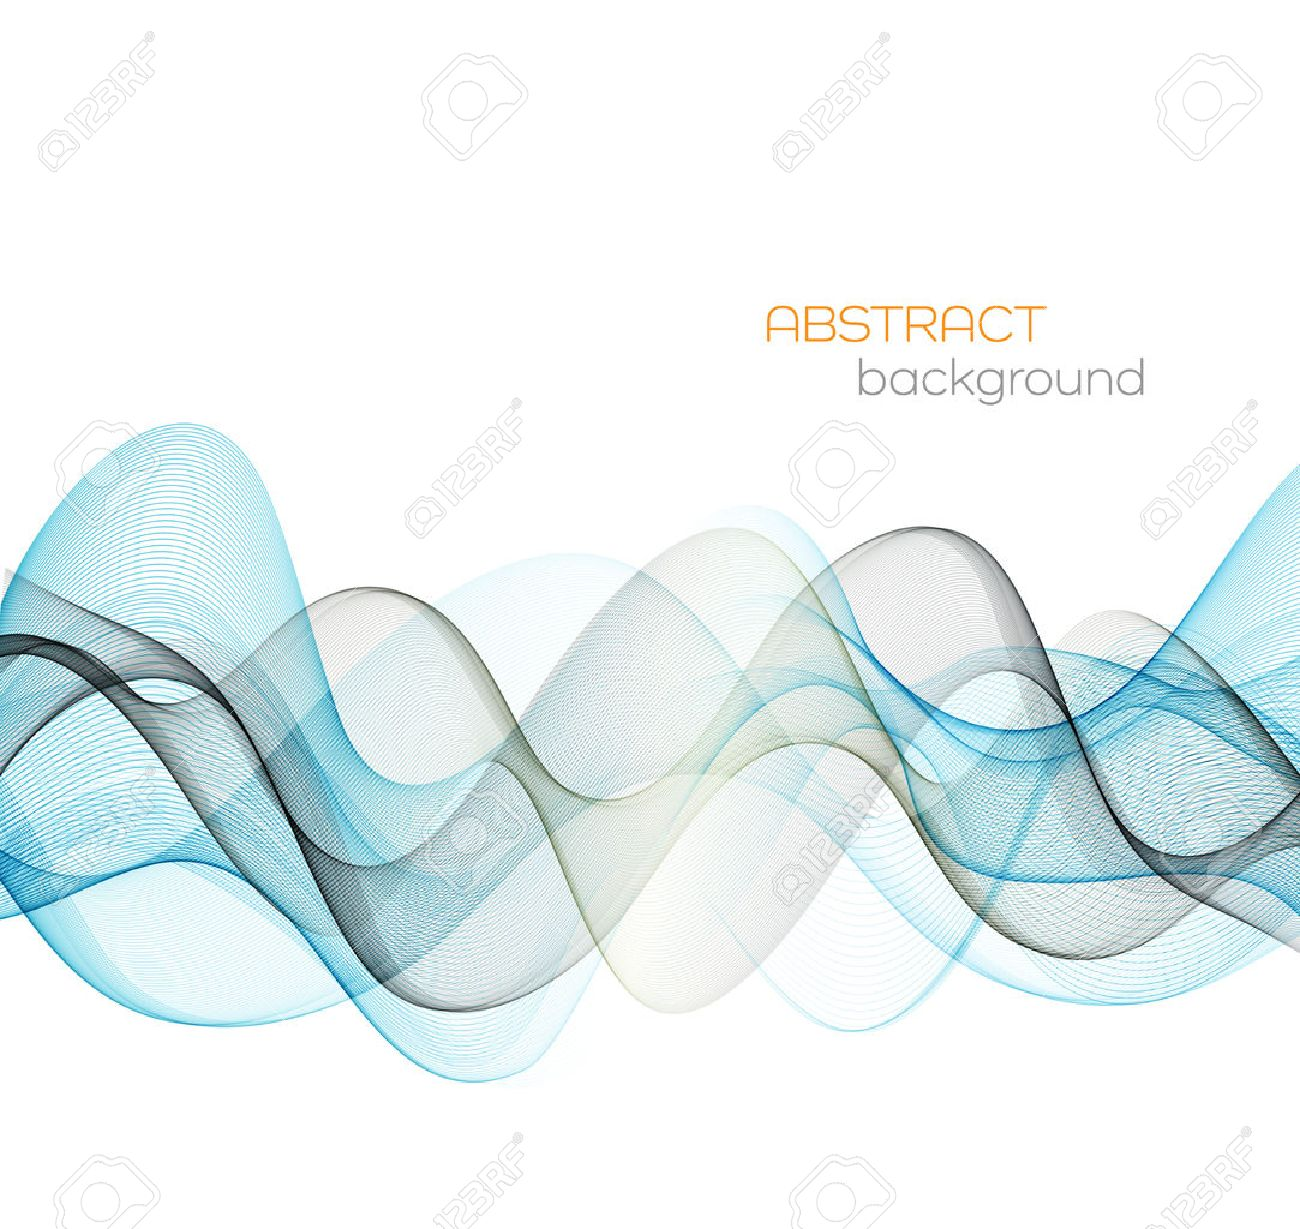 Abstract vector background, blue transparent waved lines for brochure, website, flyer design. Blue and gray smoke wave. Blue wavy background - 56986245